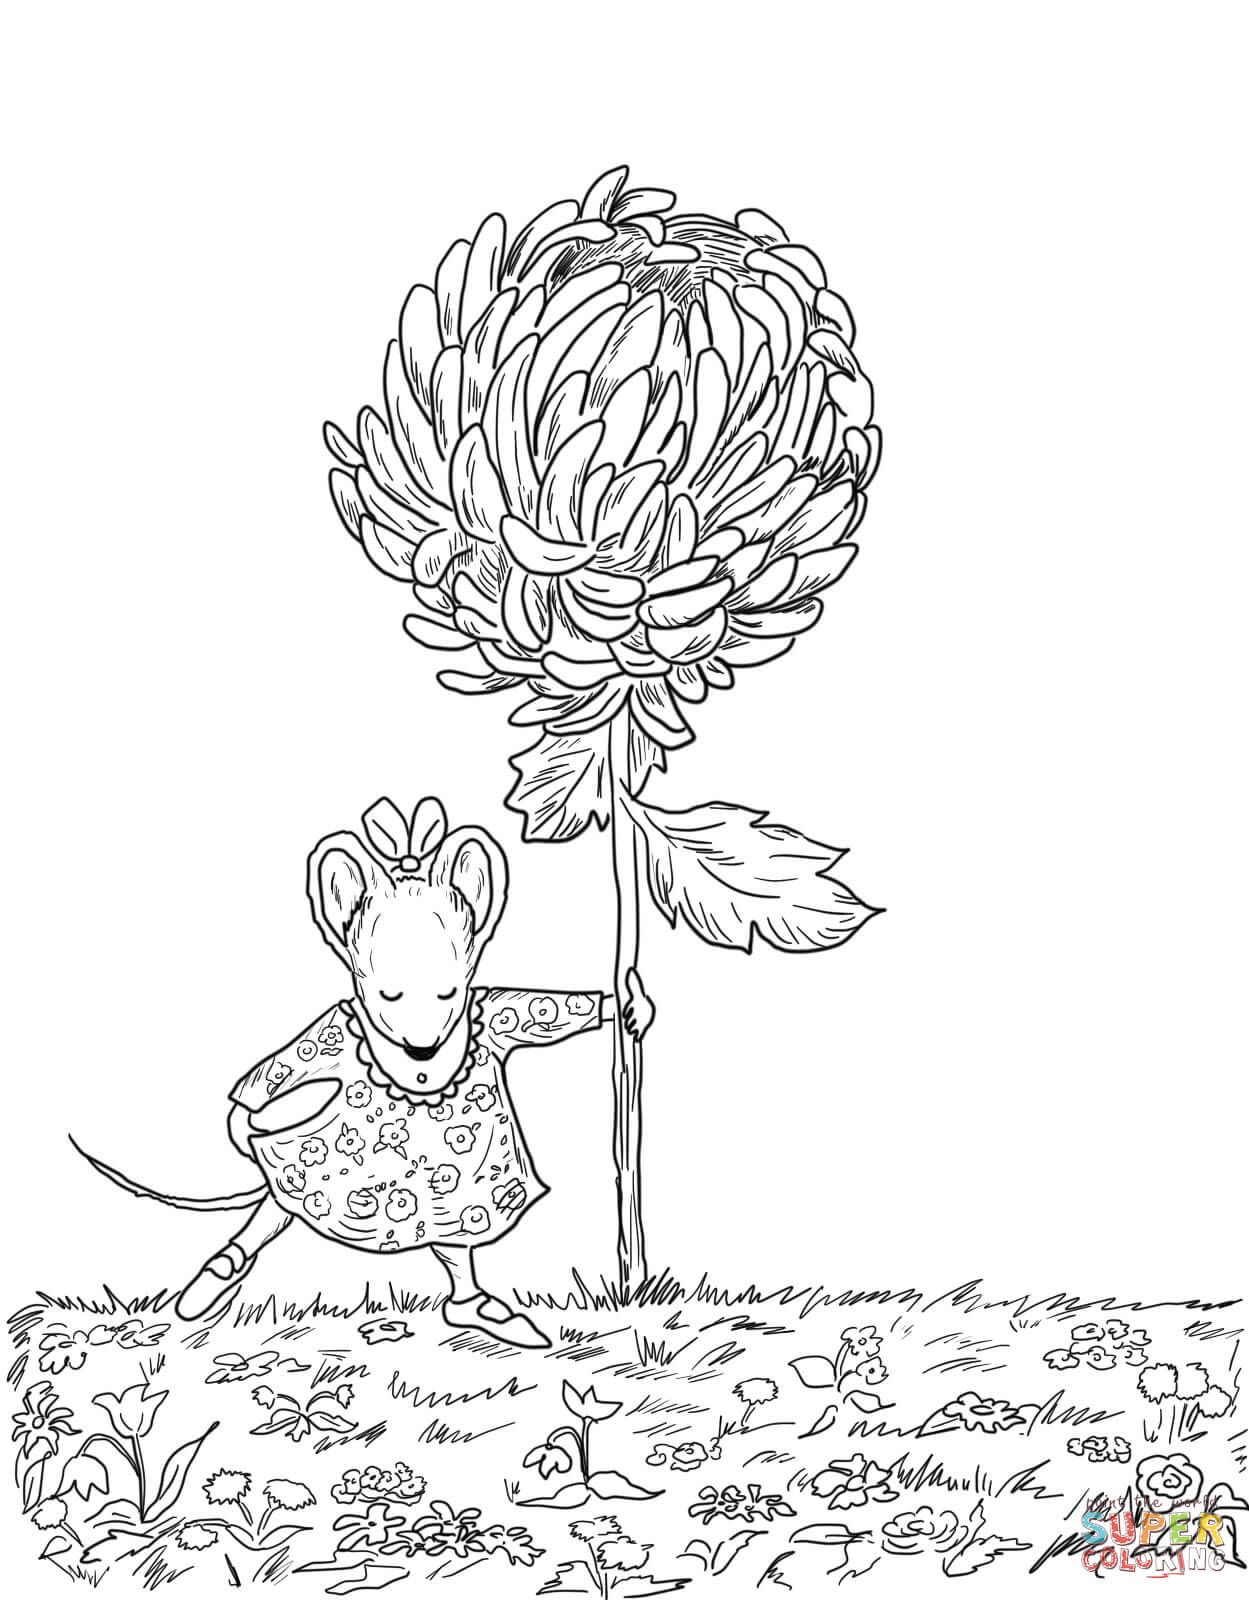 Chrysanthemum coloring page | Free Printable Coloring Pages | Just ...